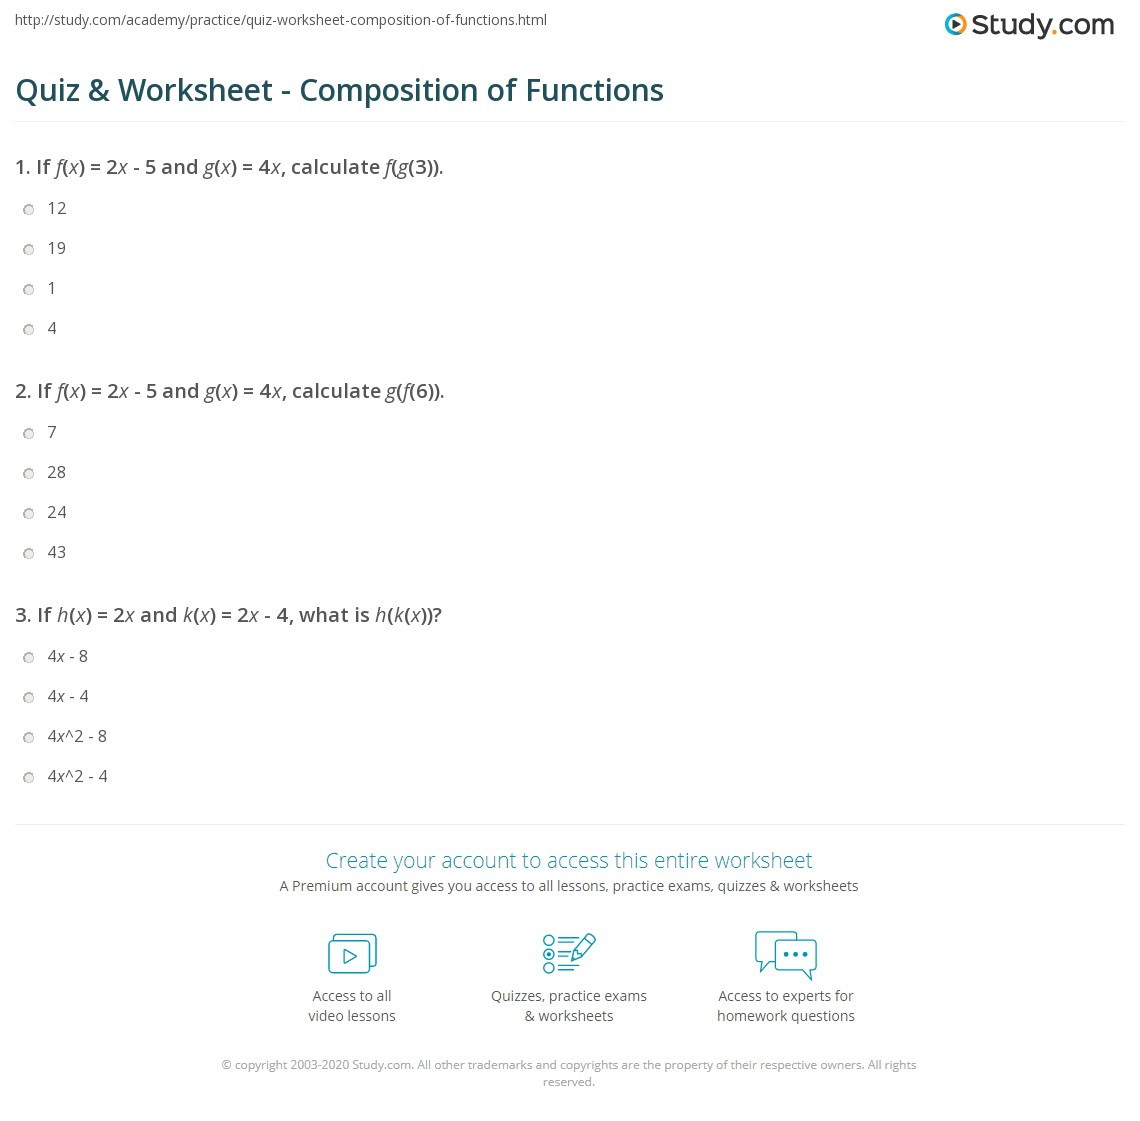 Quiz & Worksheet - Composition of Functions | Study.com